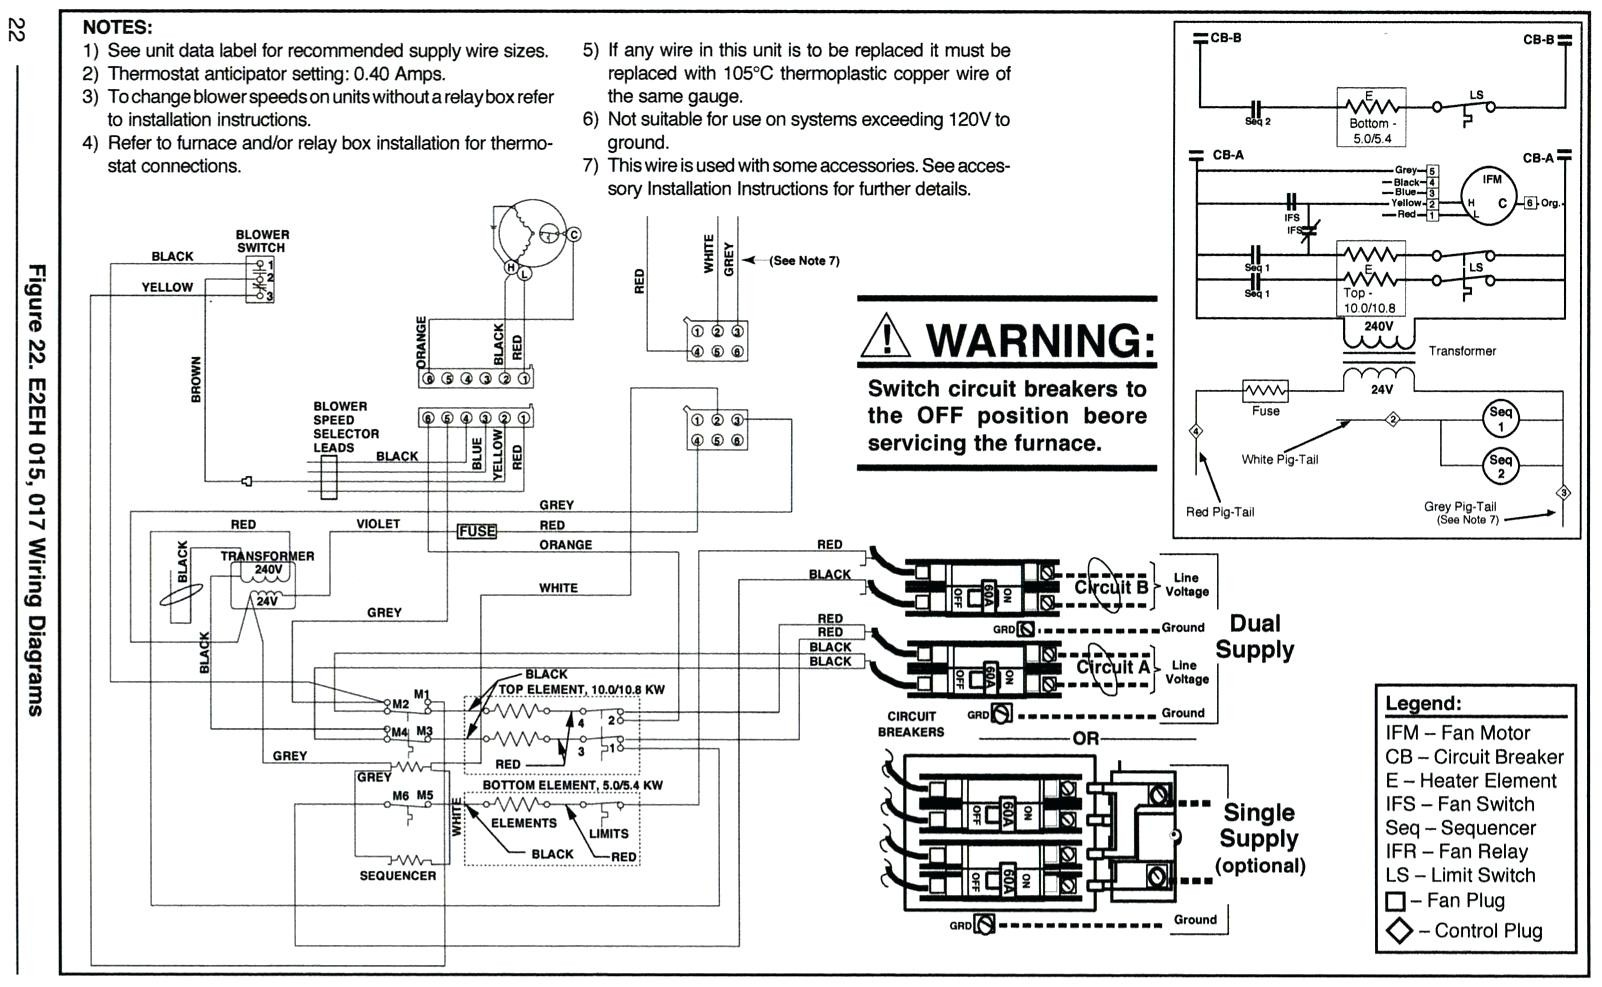 Full Size of Goodman Furnace Thermostat Wiring Diagram Electrical Electric Parts With D Archived Wiring